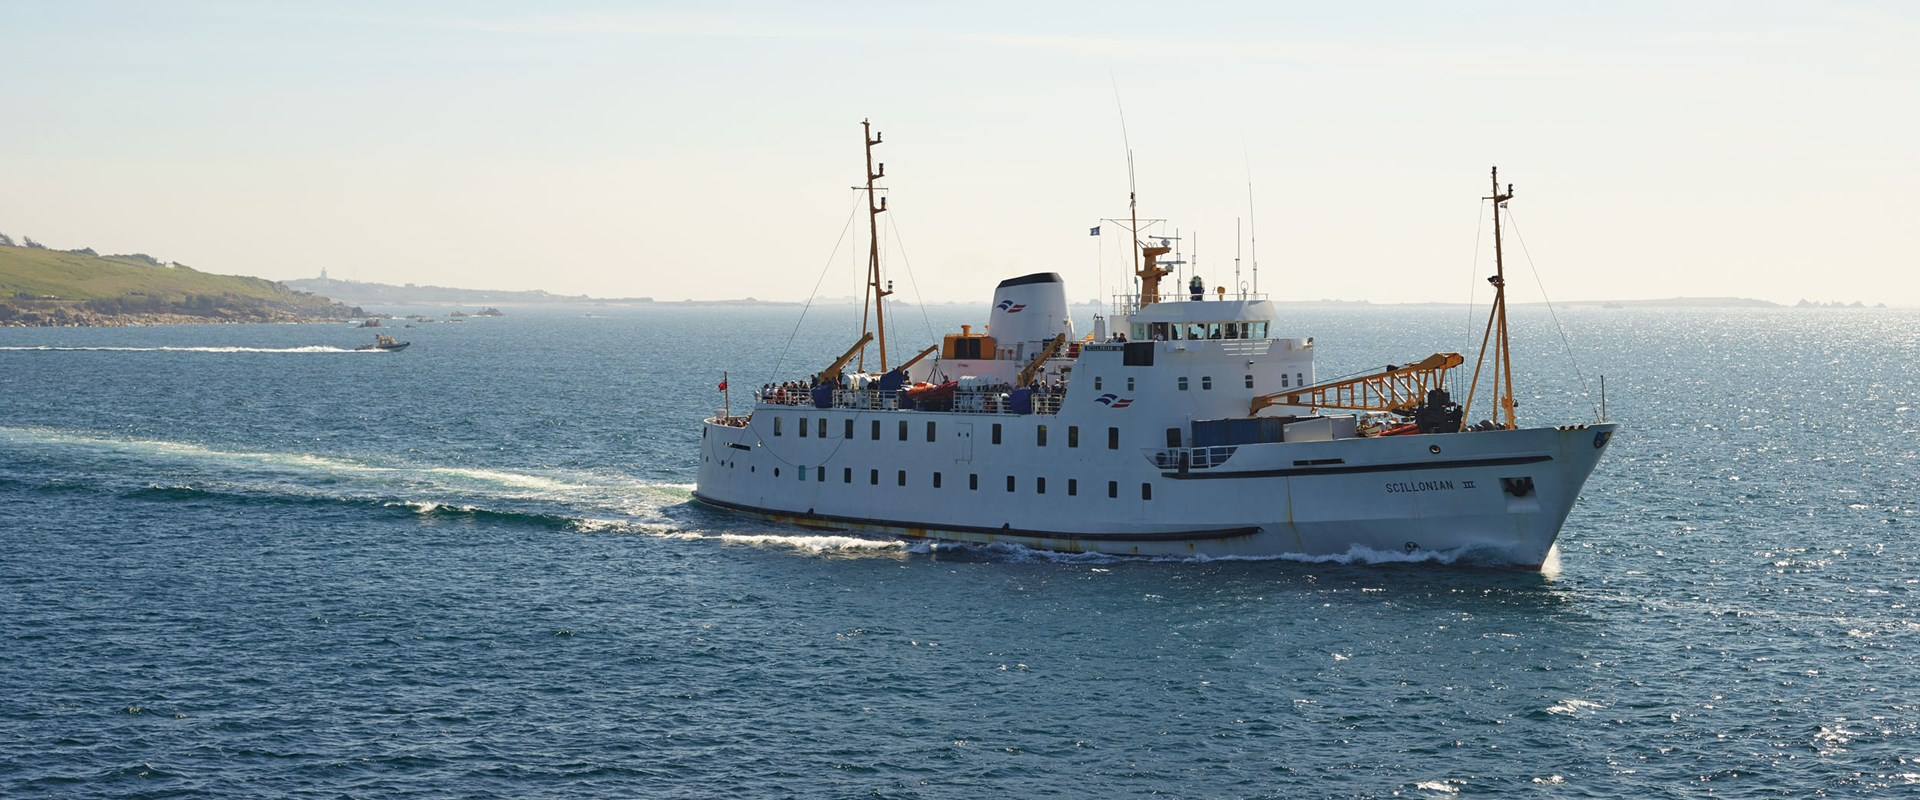 bmt | Isles of Scilly Steamship Group's Scillonian III passenger ship